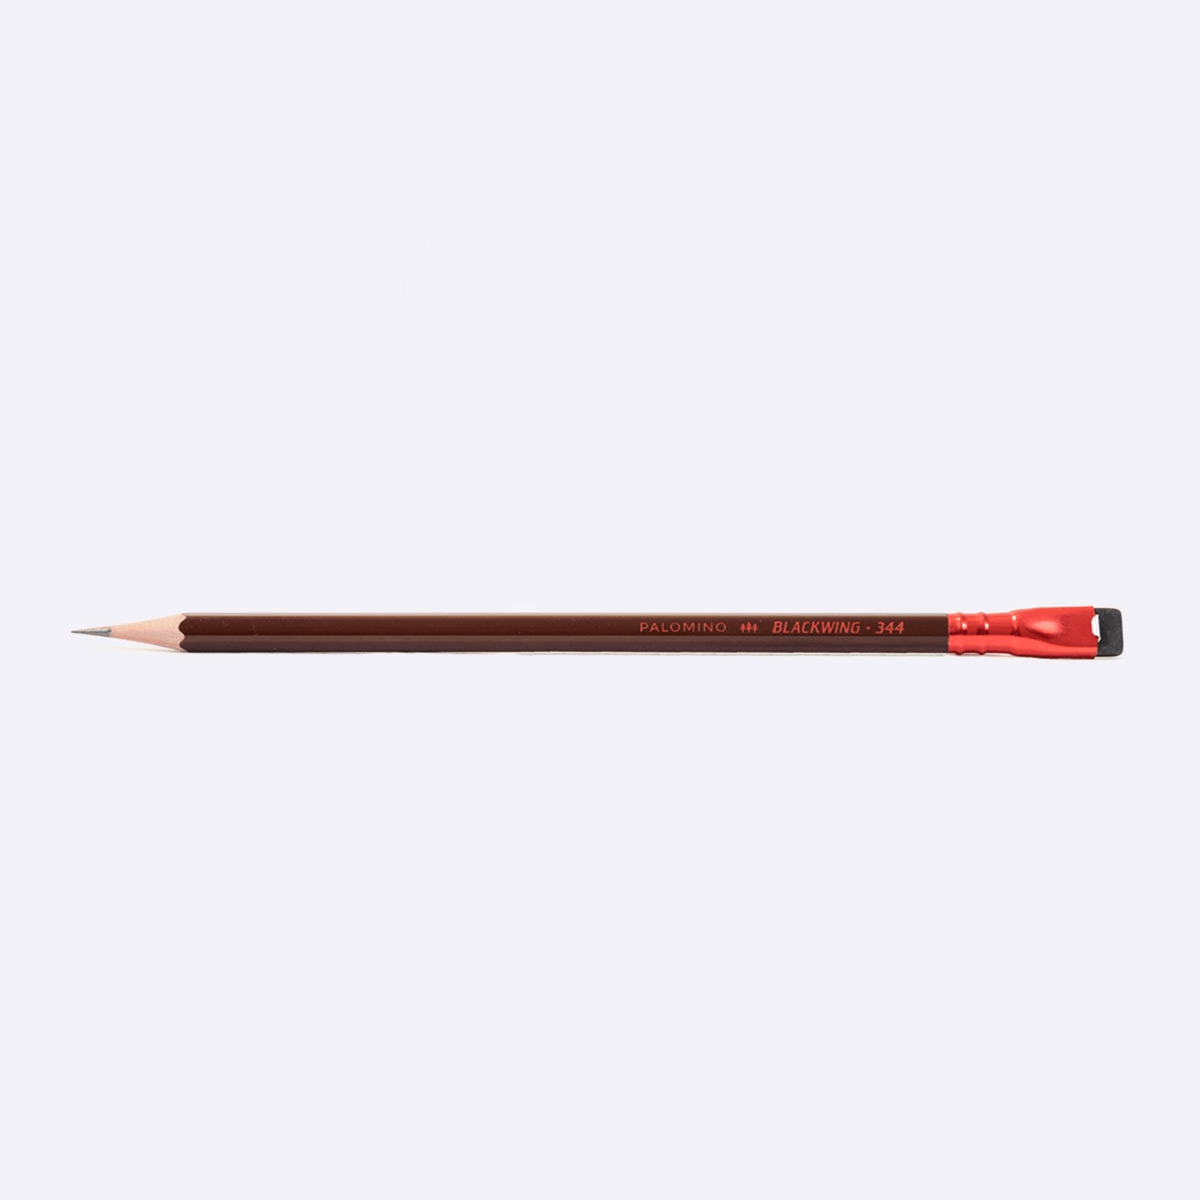 Blackwing 344 Pencil